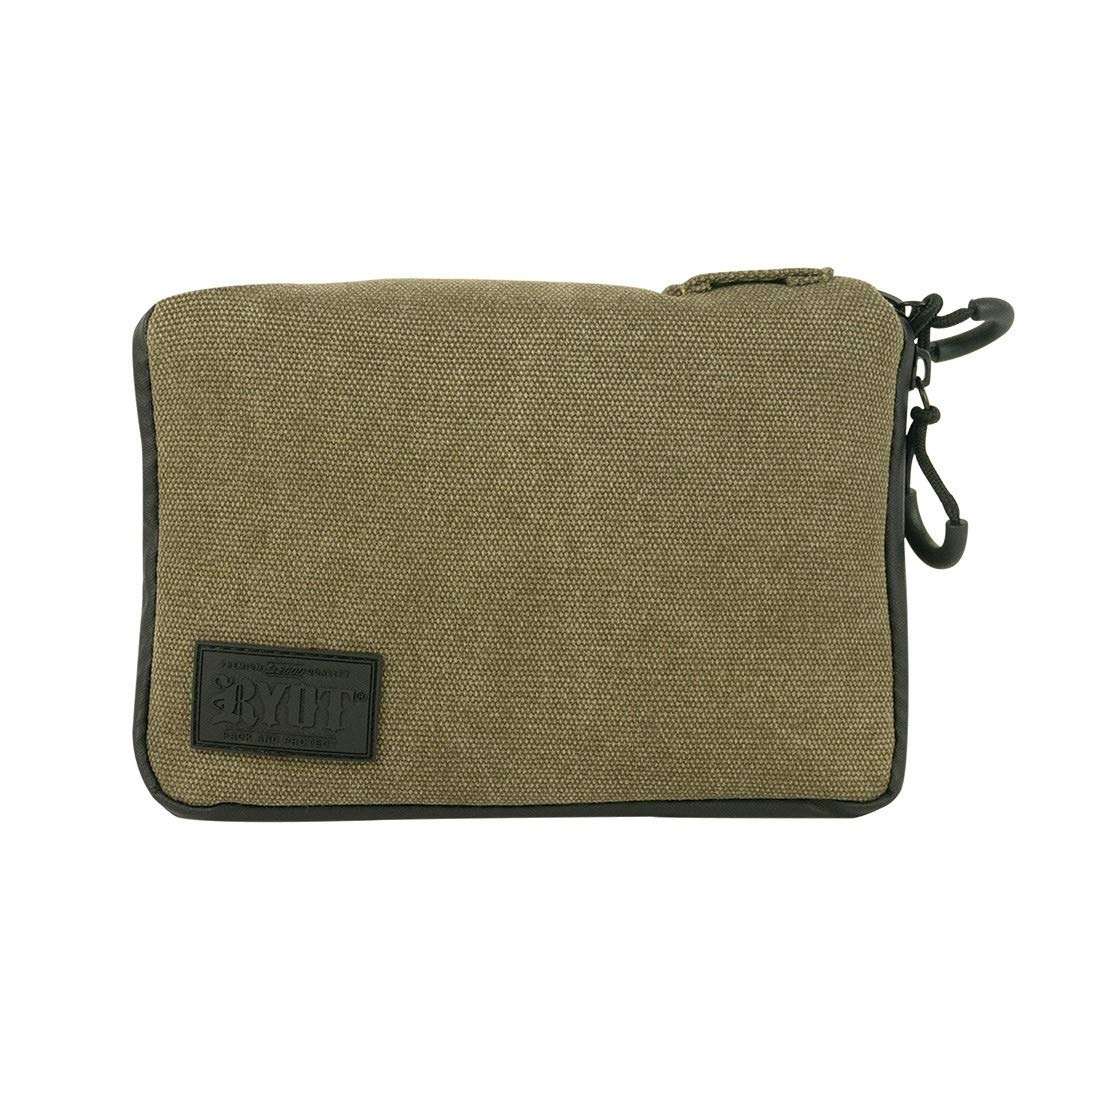 RYOT PackRatz Case - Carbon Series with SmellSafe and Lockable Technology (Olive, Medium)